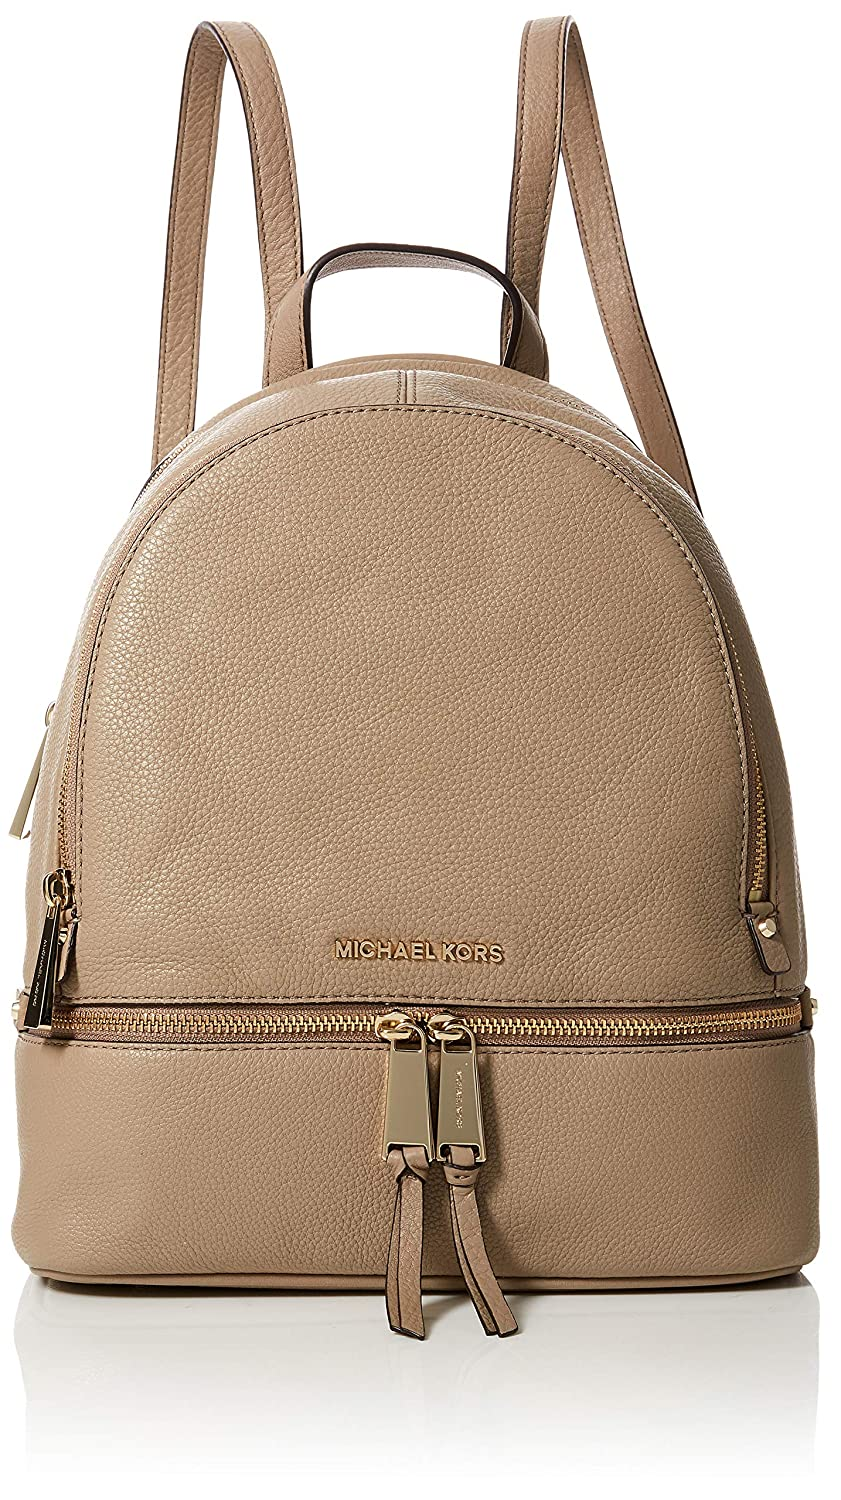 a9c37db70db22 Amazon.com  Michael Kors Womens Rhea Zip Backpack Handbag Beige (TRUFFLE)   Shoes